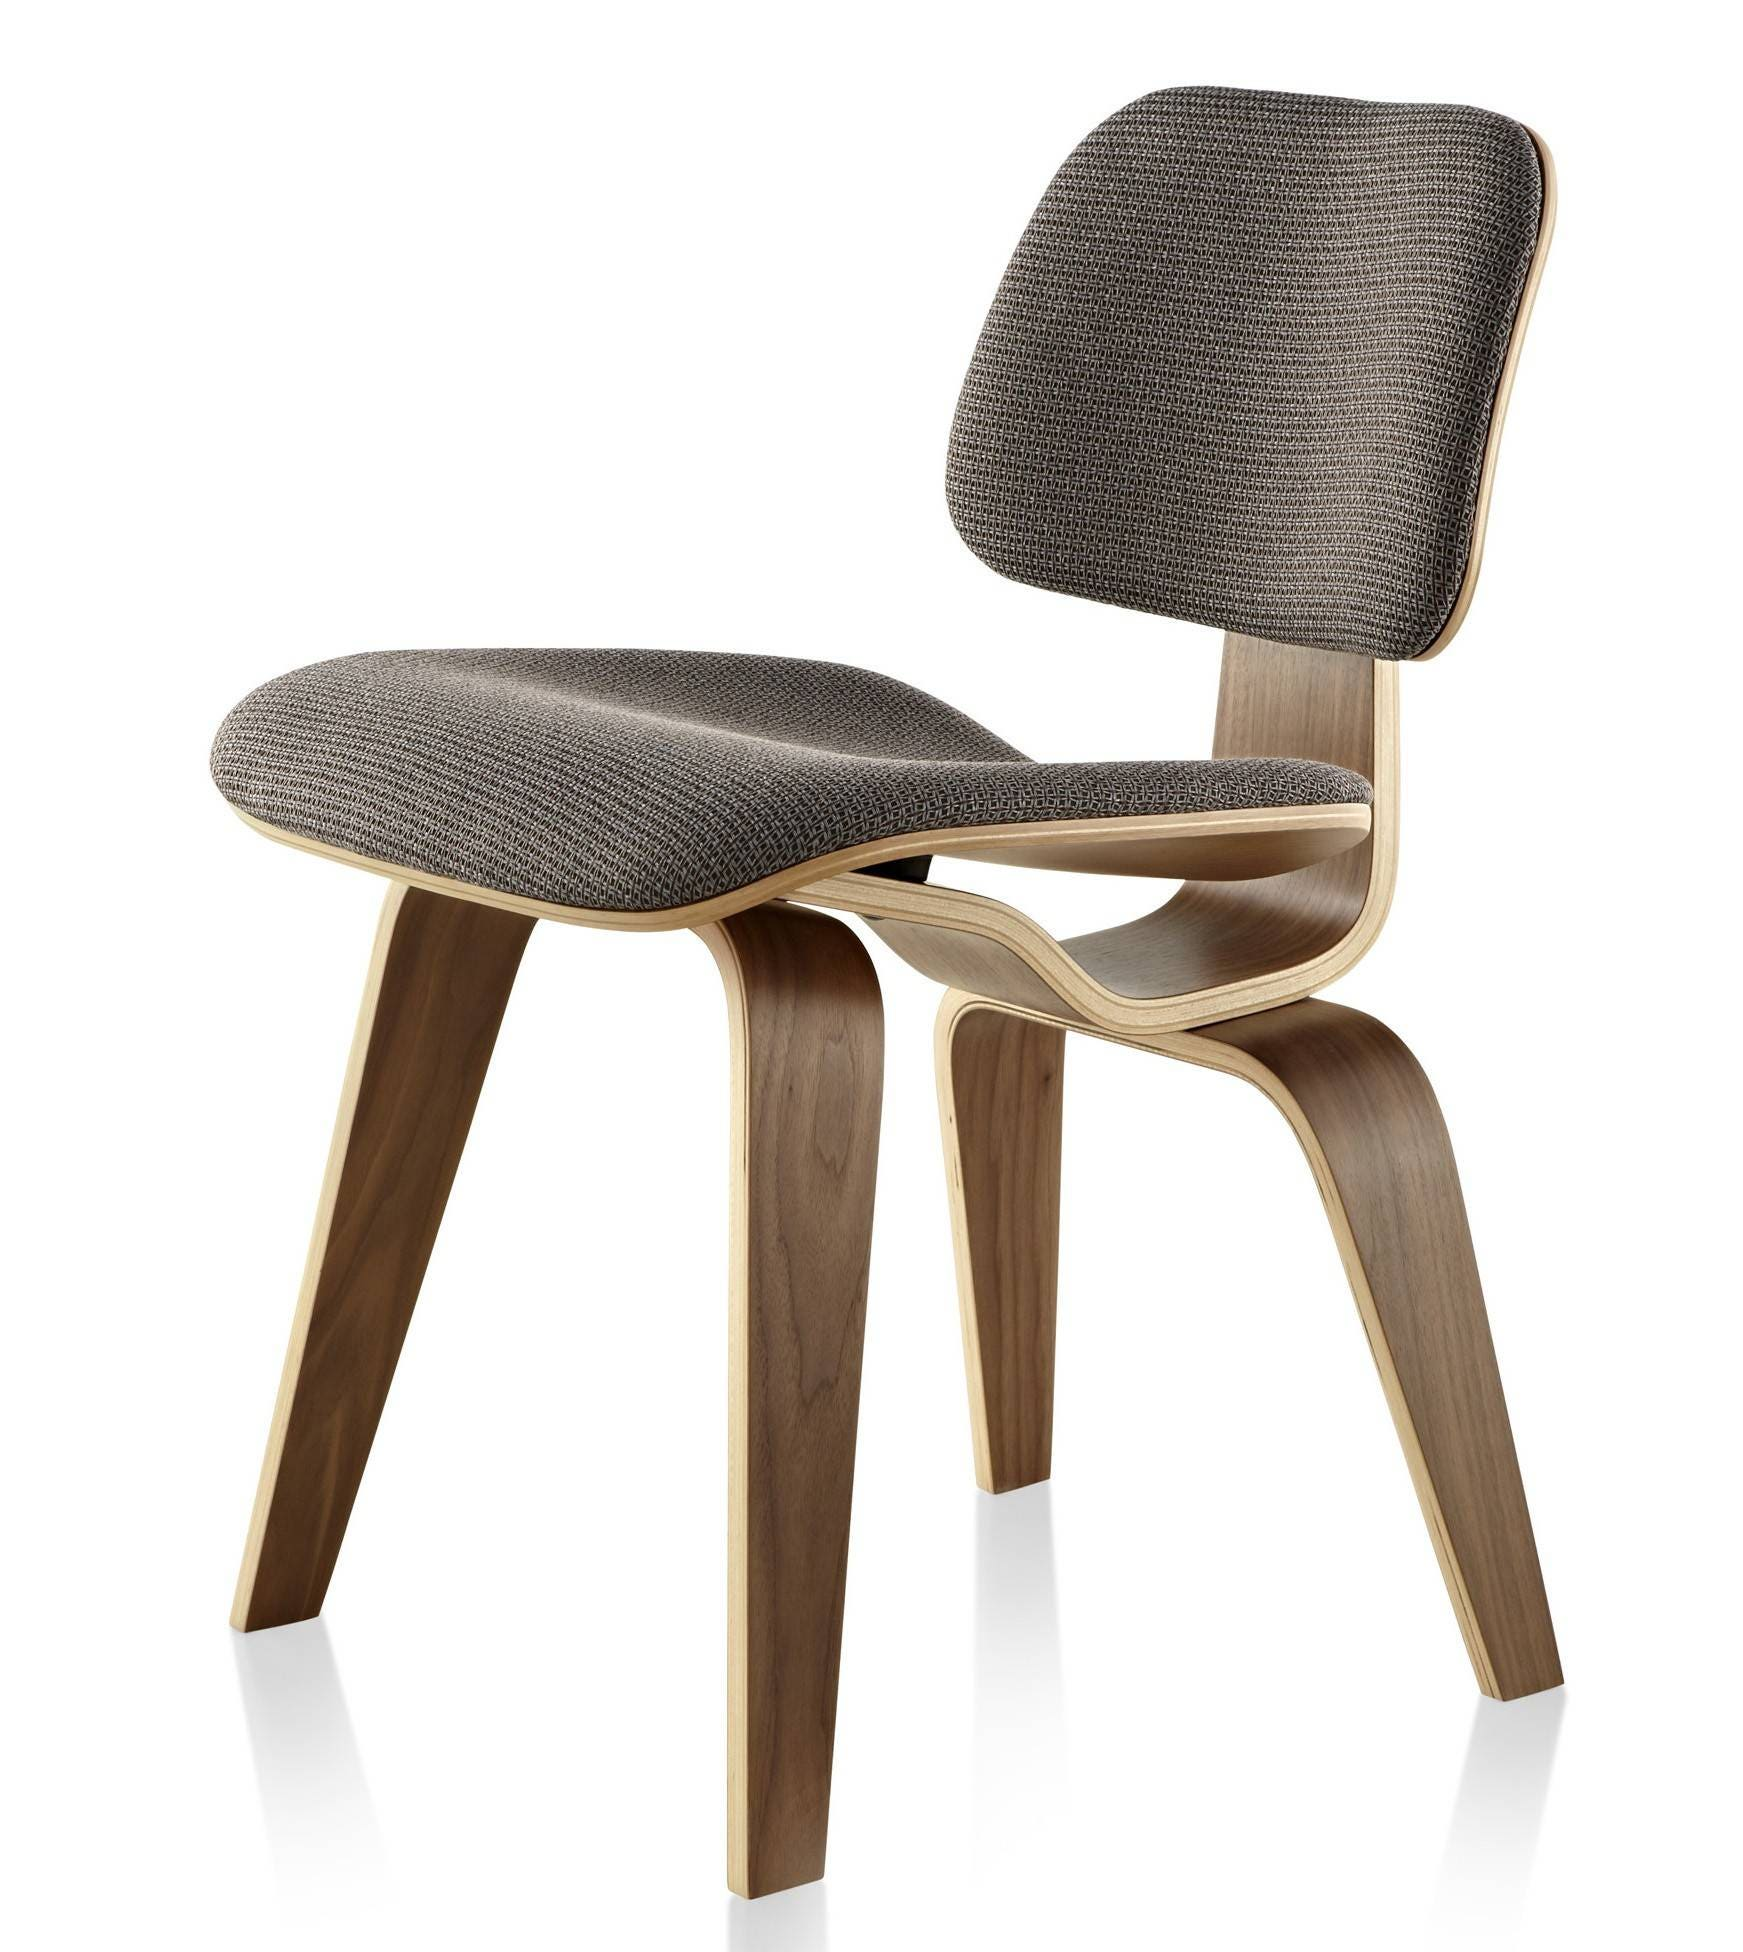 Herman Miller Eames® Molded Plywood Upholstered Dining Chair - Wood Legs